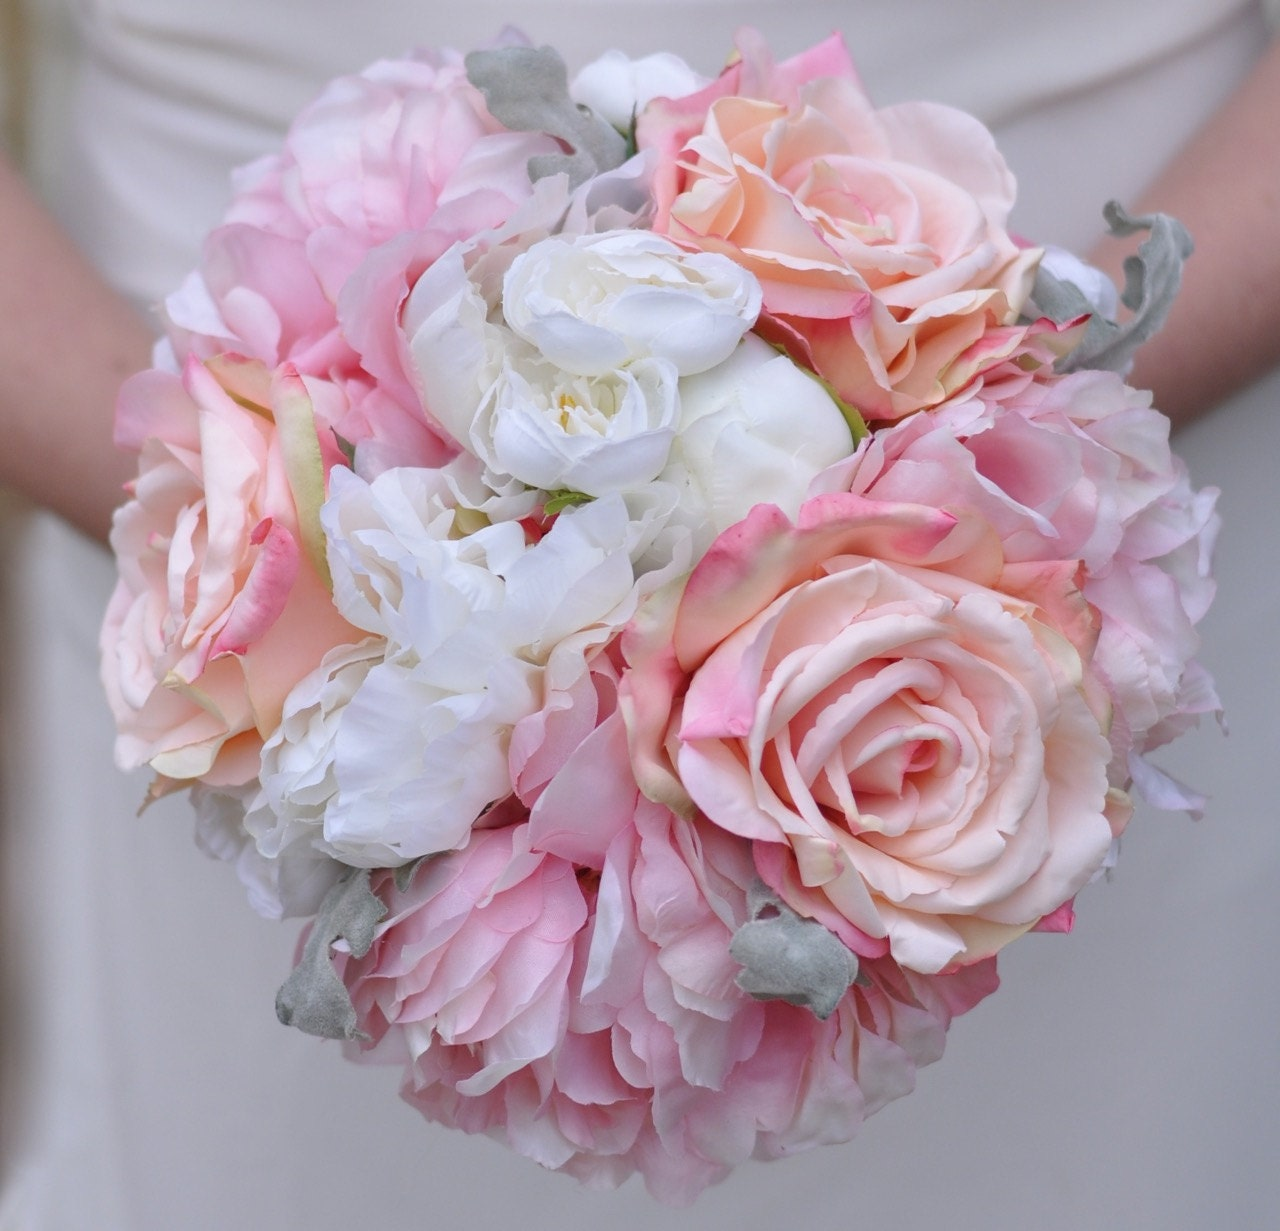 Blush Pink Rose Bouquet Pink Peonies Ivory Ranunculus with   Etsy